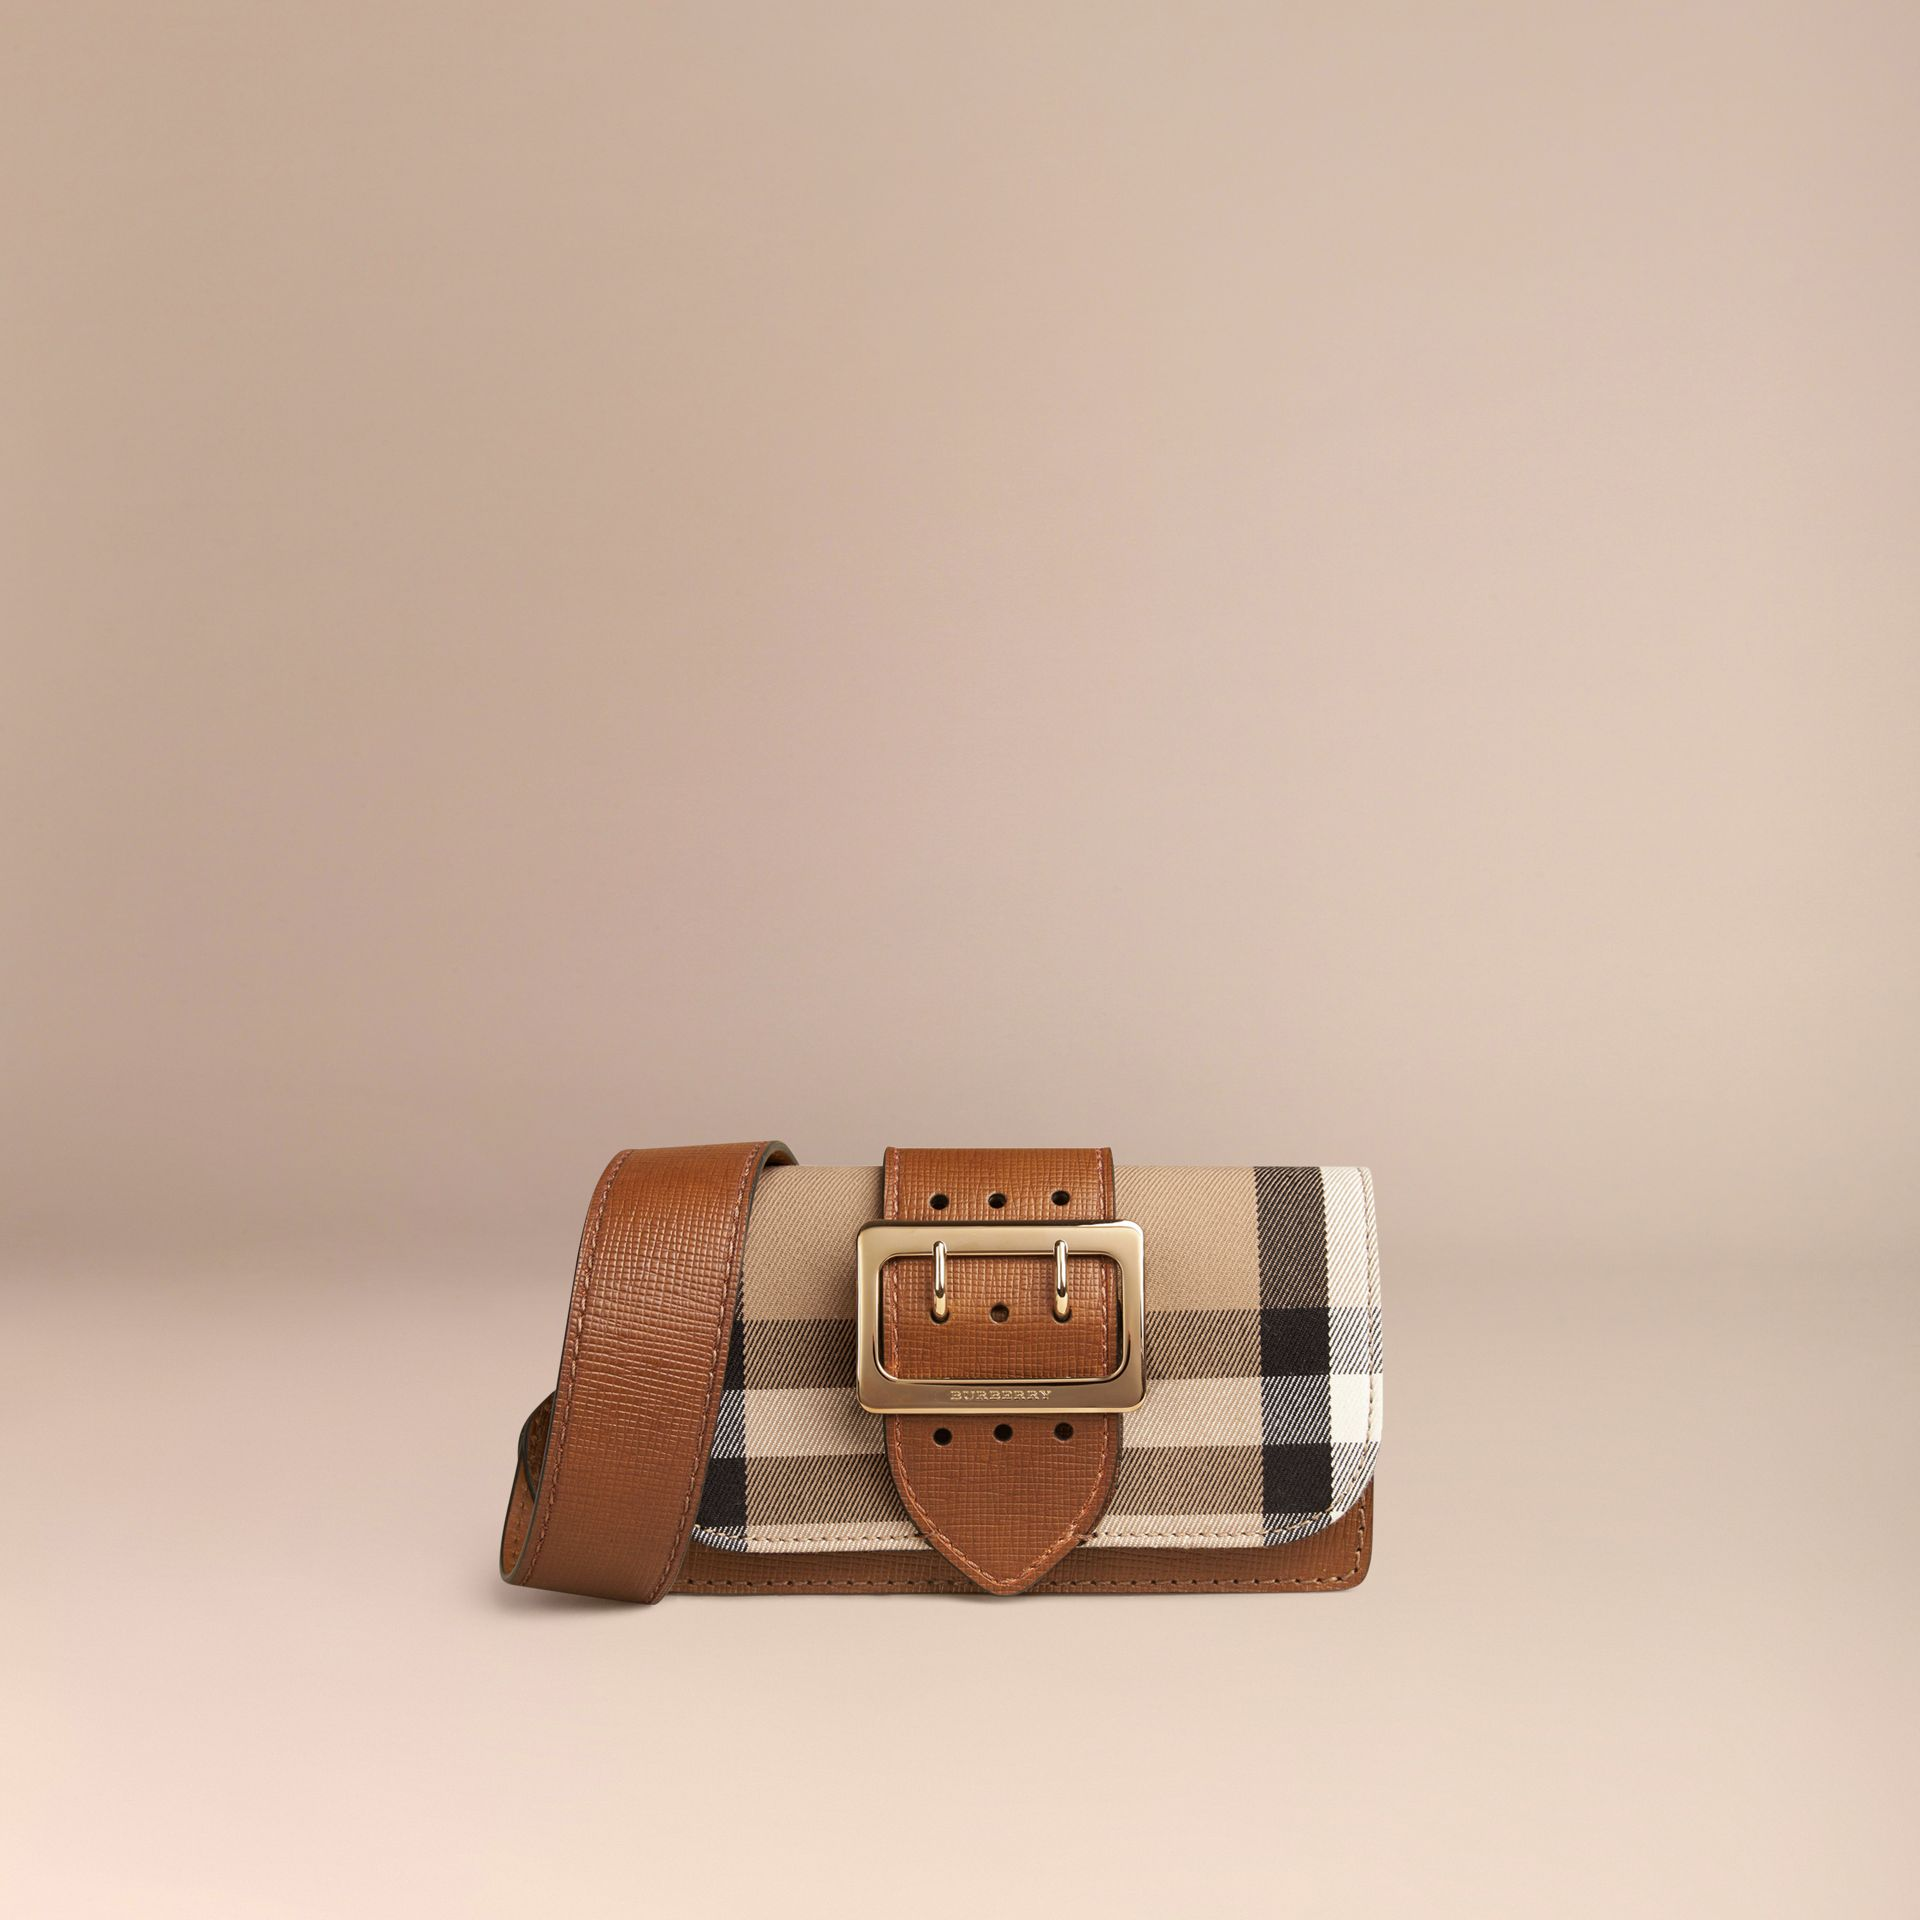 Marroncino Borsa The Buckle piccola con motivo House check e pelle Marroncino - immagine della galleria 8